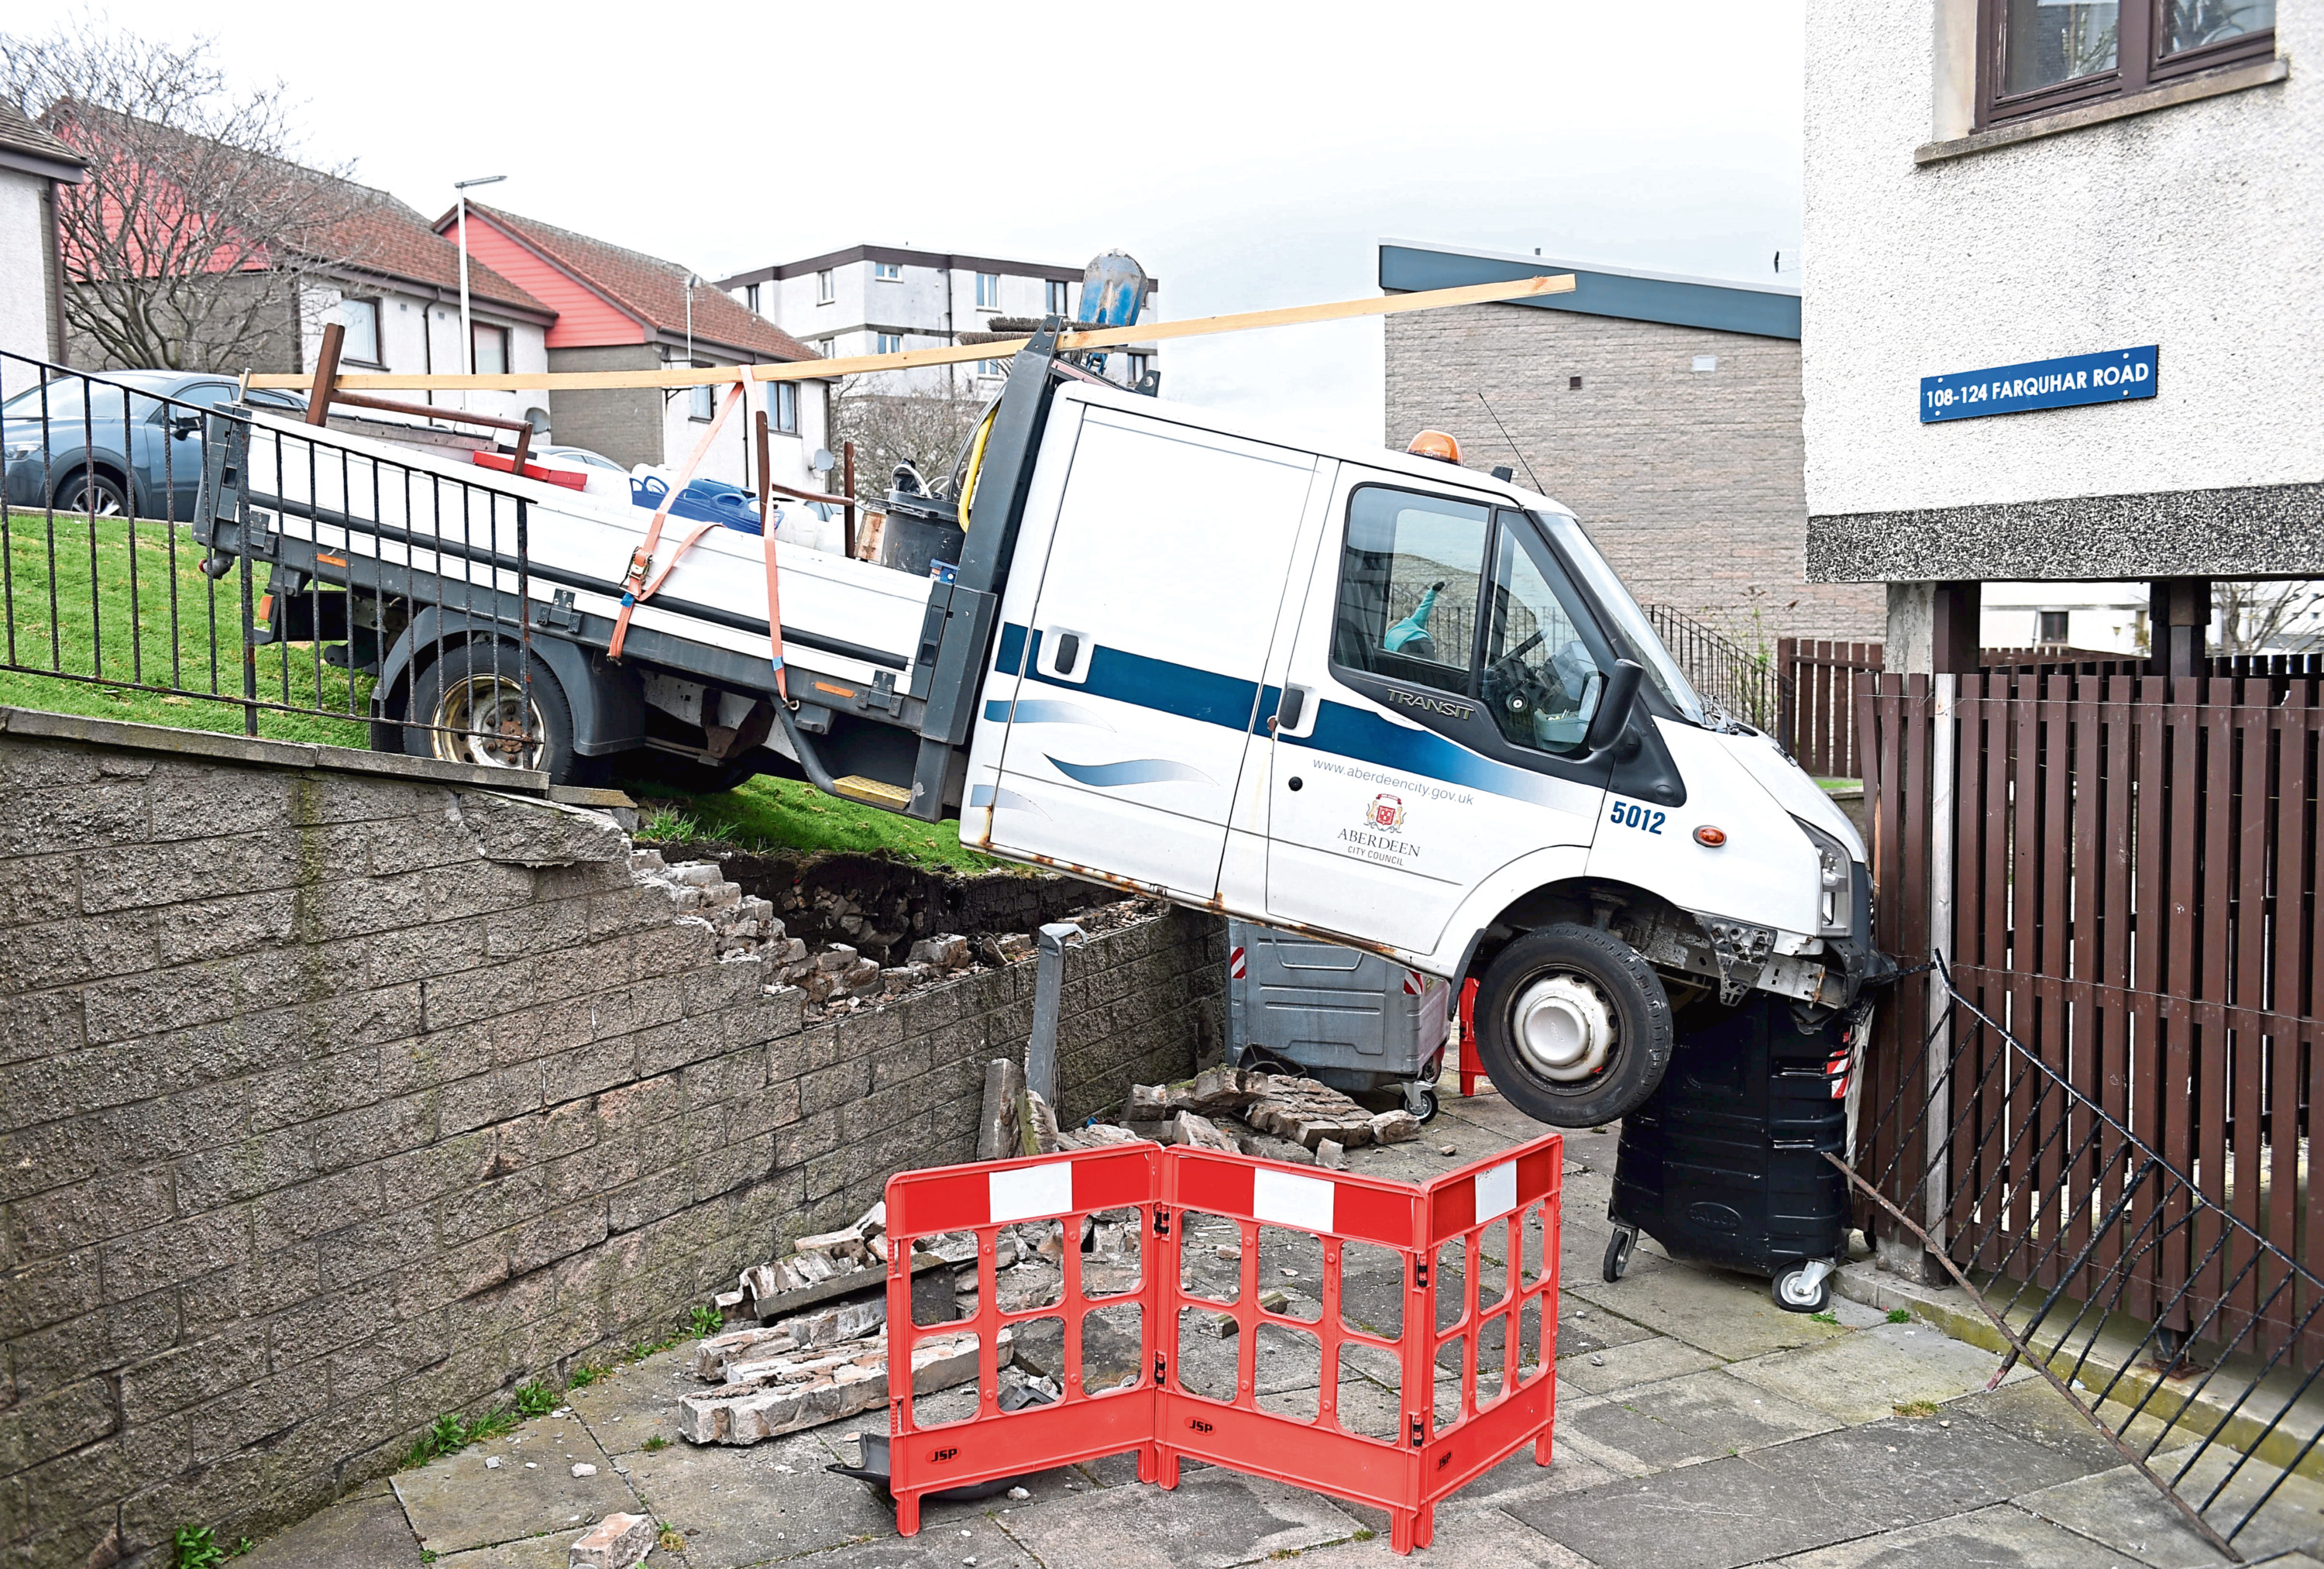 The council van smashed through a railing damaging a wall before coming to rest against a block of flats